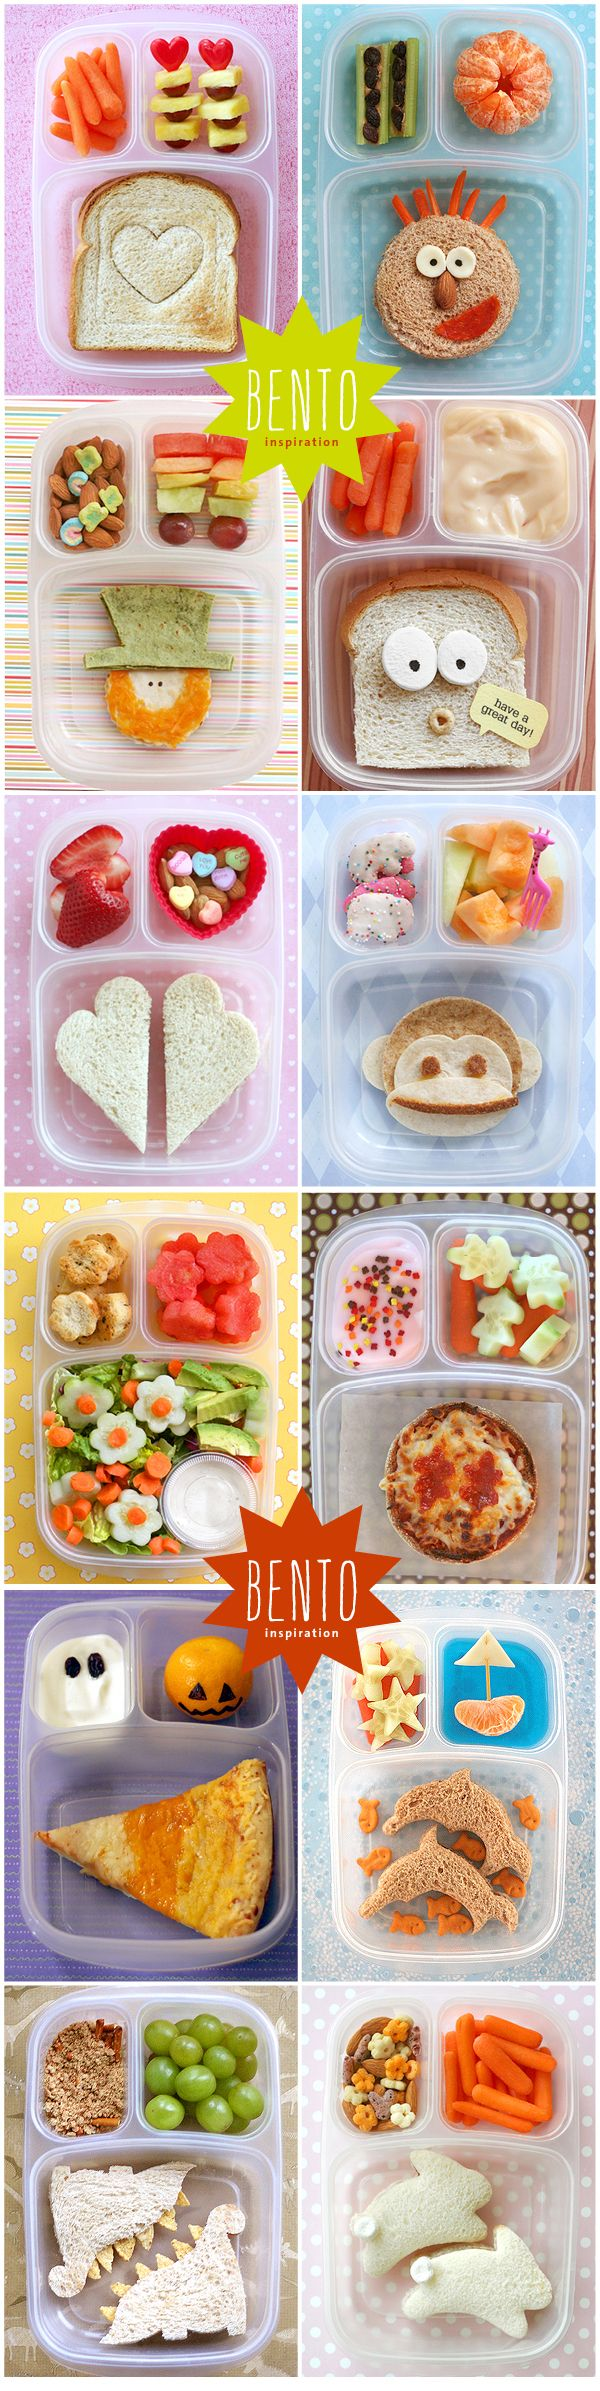 Adorable lunchbox inspiration